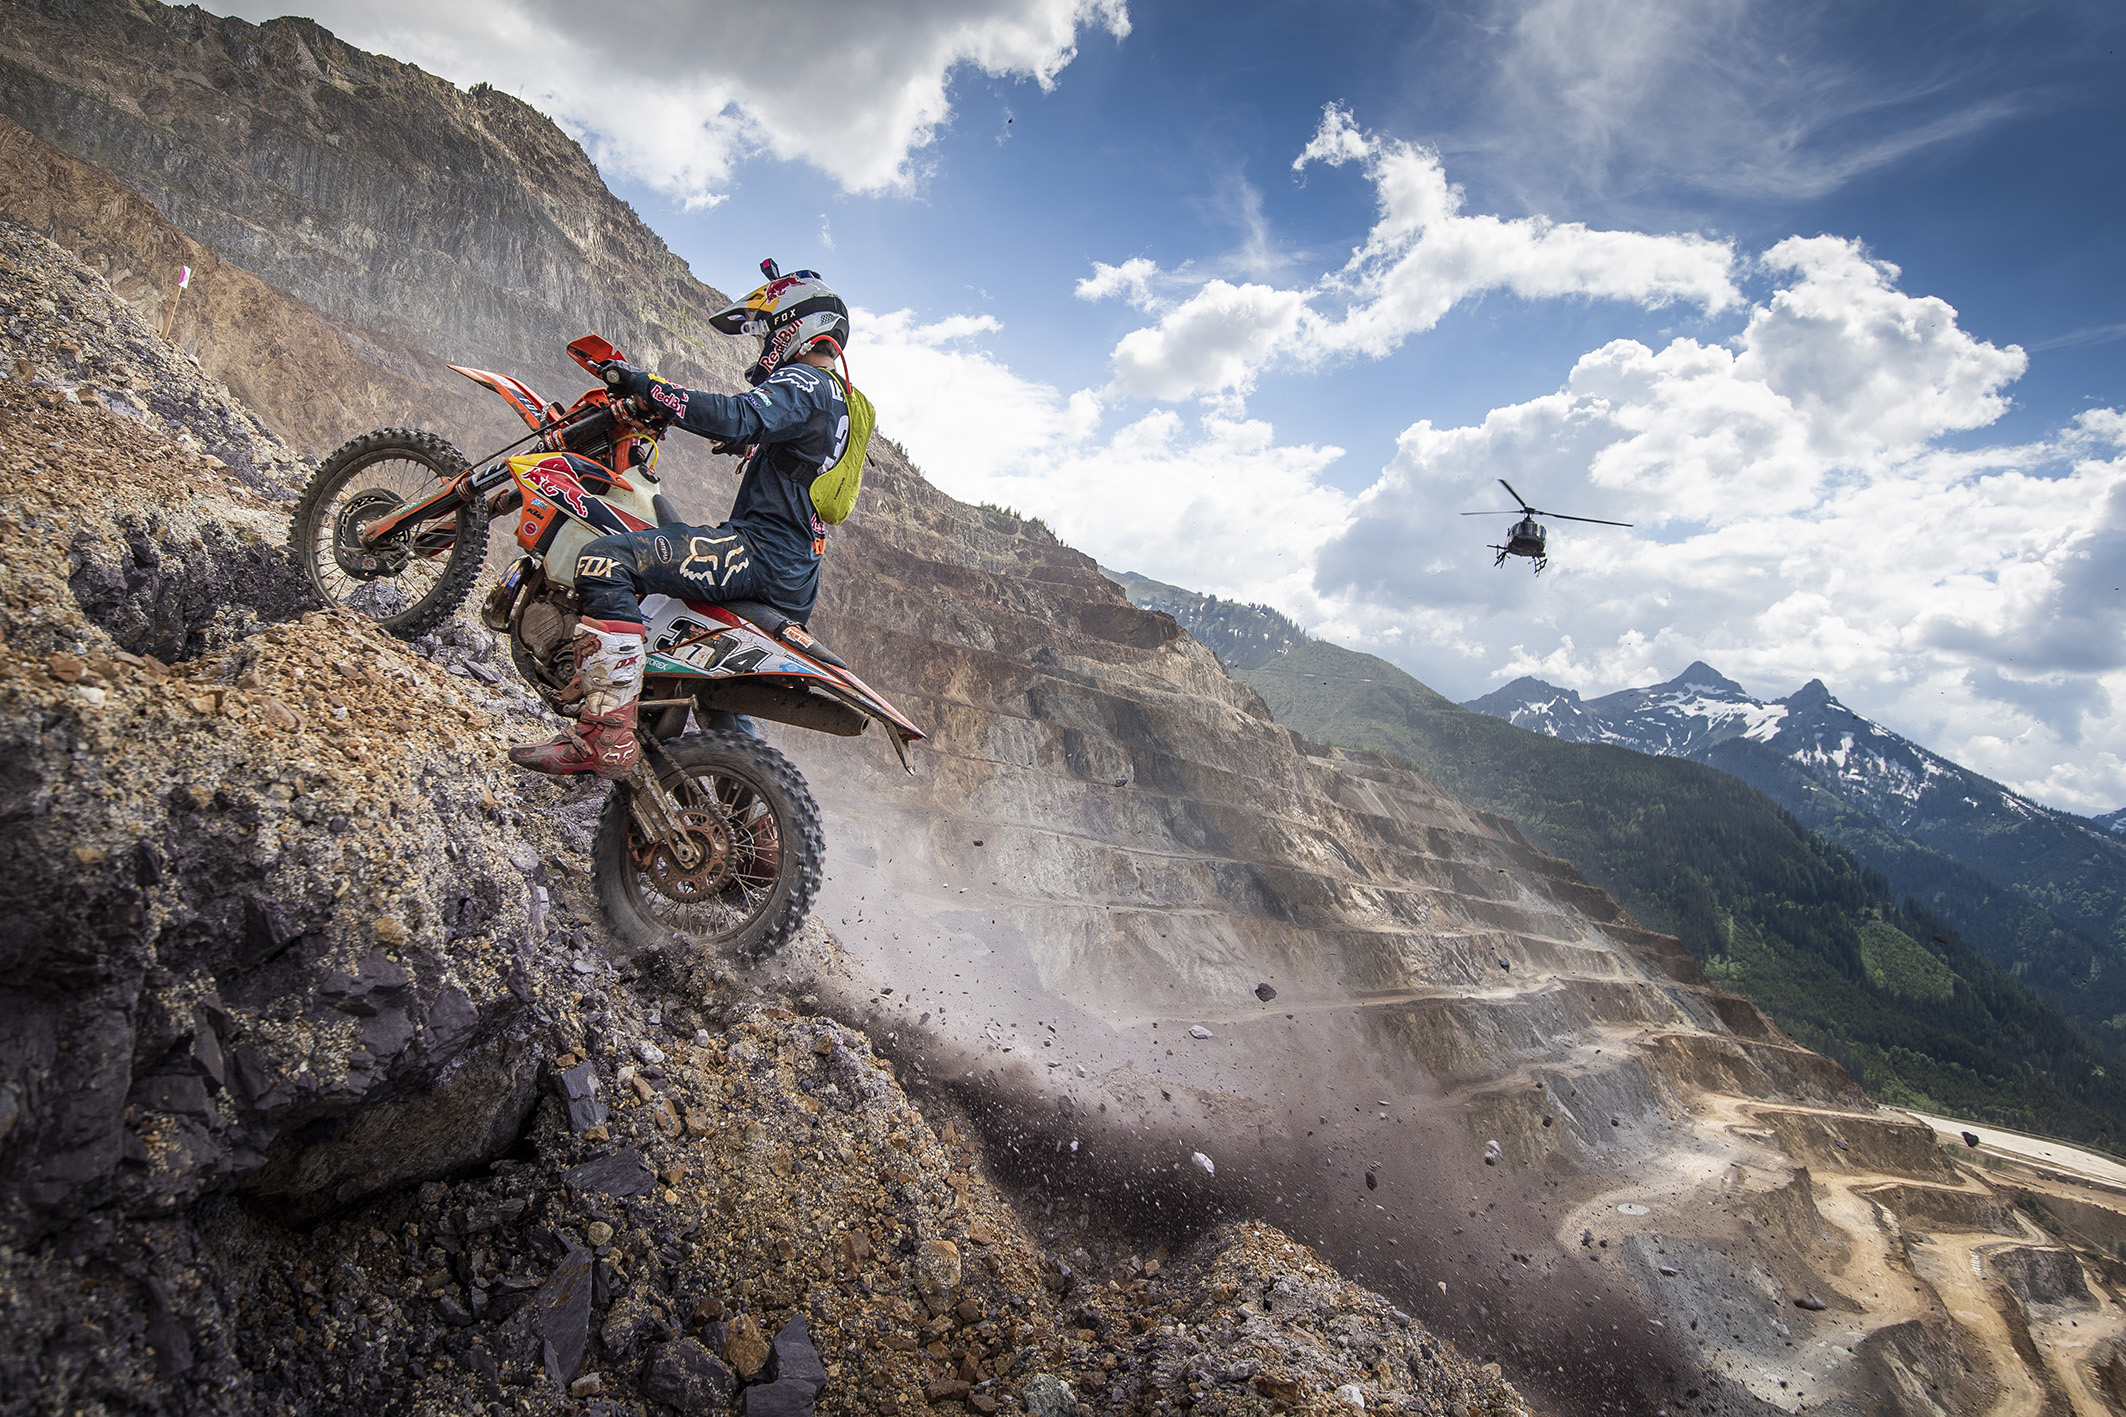 Manuel Lettenbichler races during the Red Bull Hare Scramble 2019 in Eisenerz, Austria on June 2, 2019 // Philip Platzer/Red Bull Content Pool // AP-1ZH9SUVSN2111 // Usage for editorial use only // Please go to www.redbullcontentpool.com for further information. //